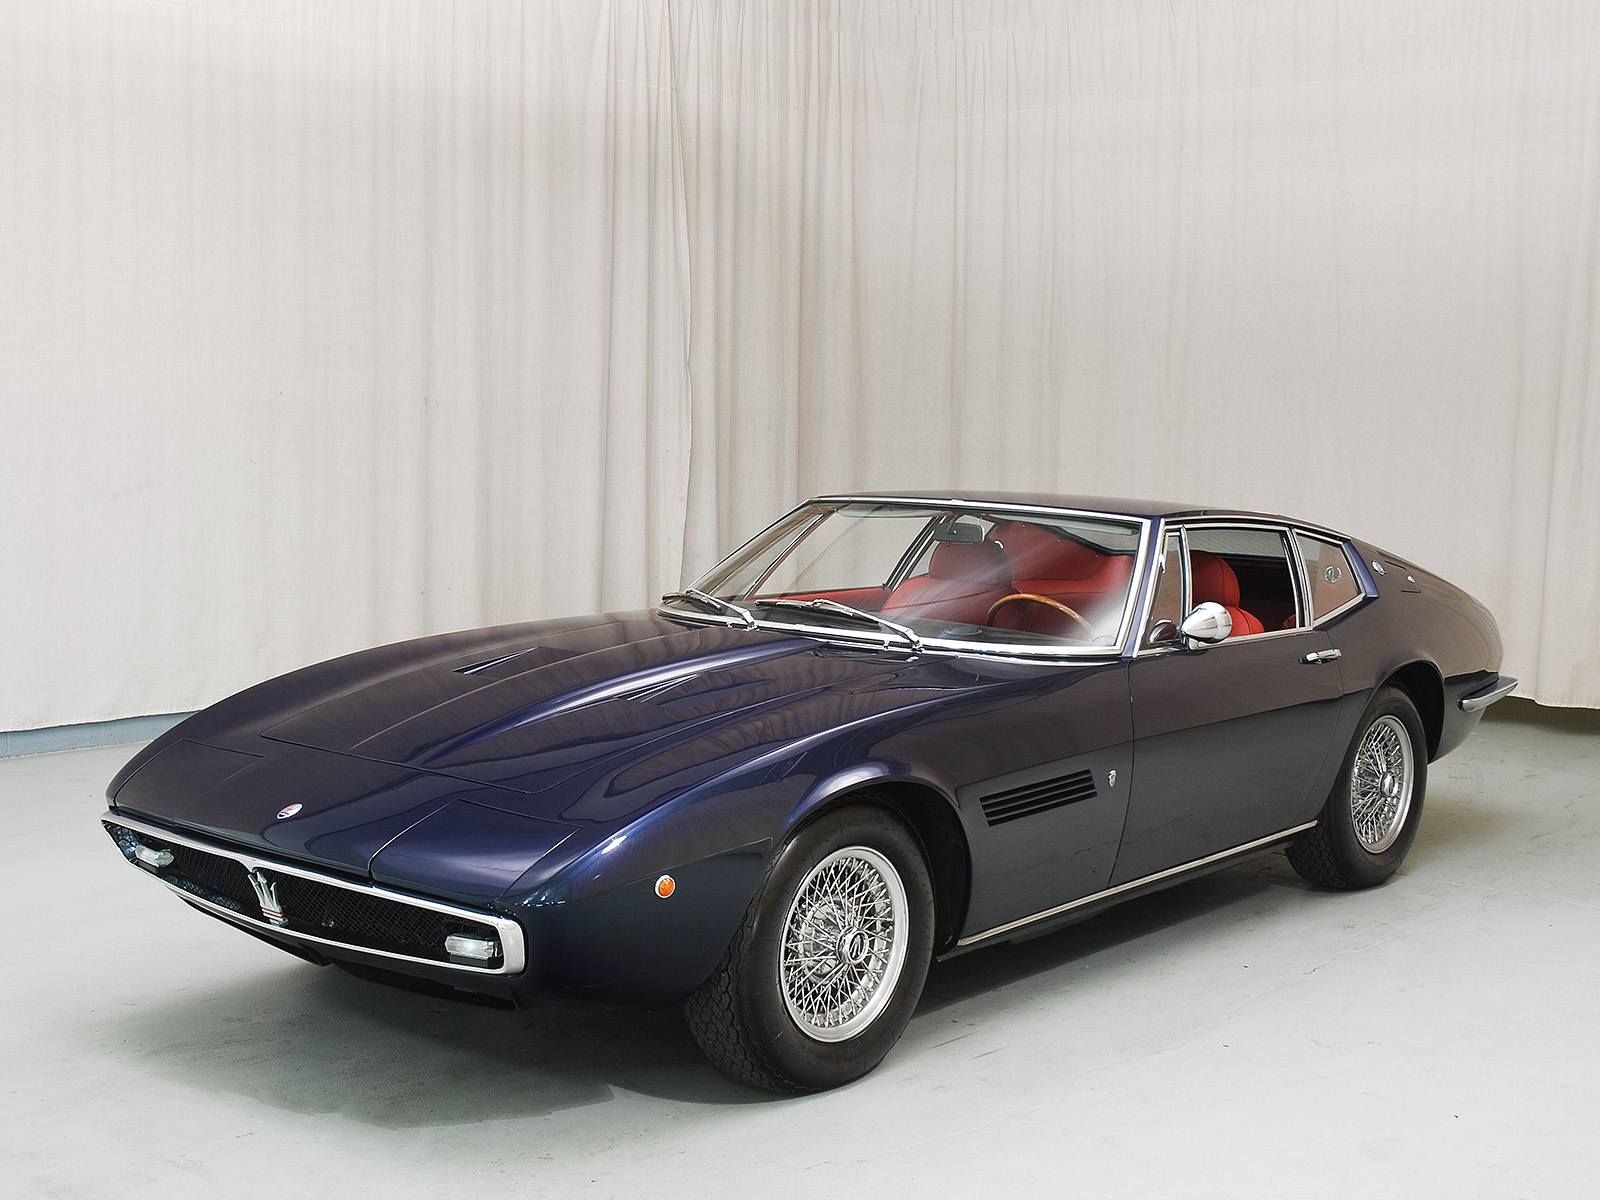 1970 maserati ghibli 4 9 ss coupe hyman ltd classic cars. Black Bedroom Furniture Sets. Home Design Ideas